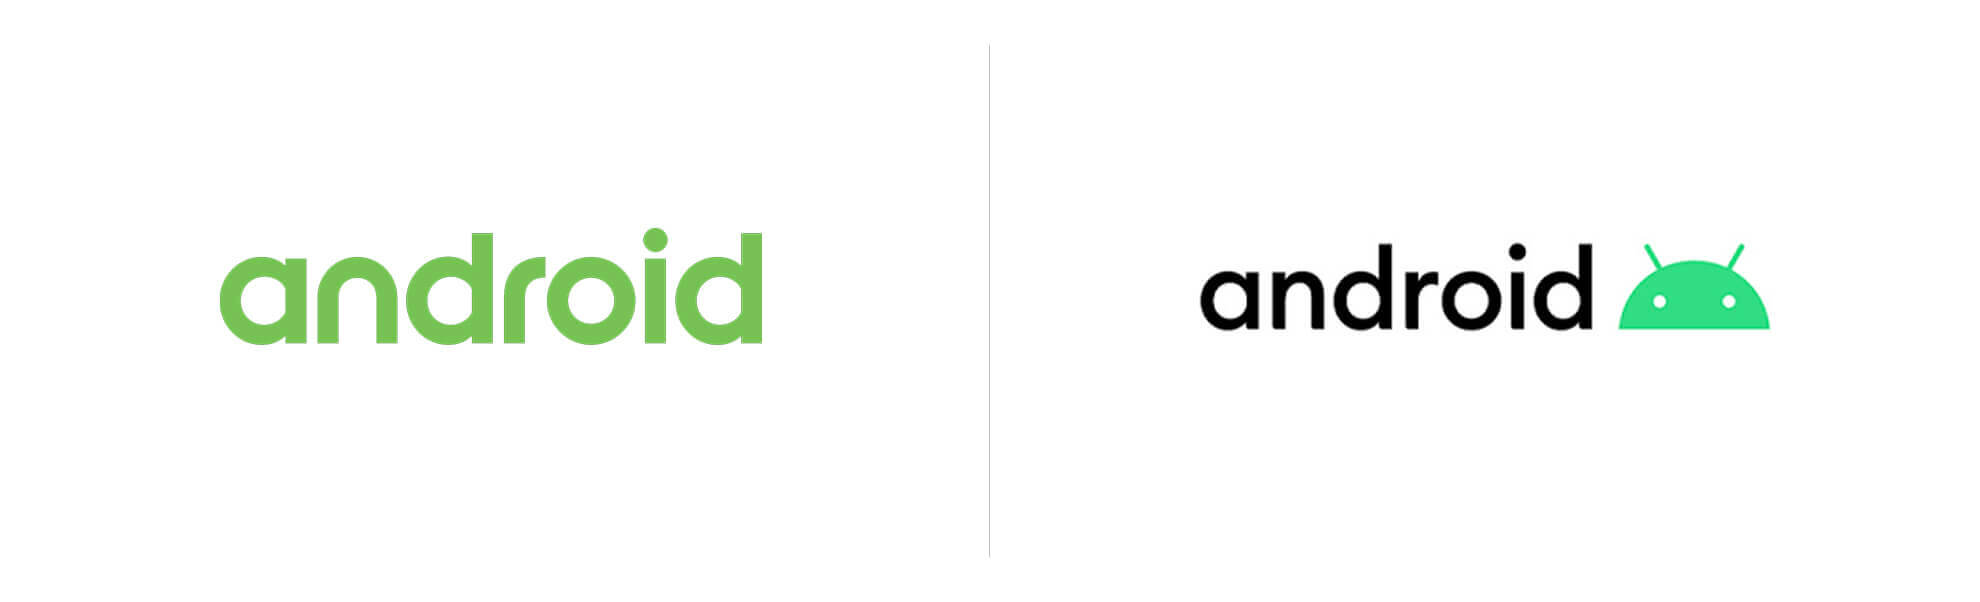 Nowe istare logo Android